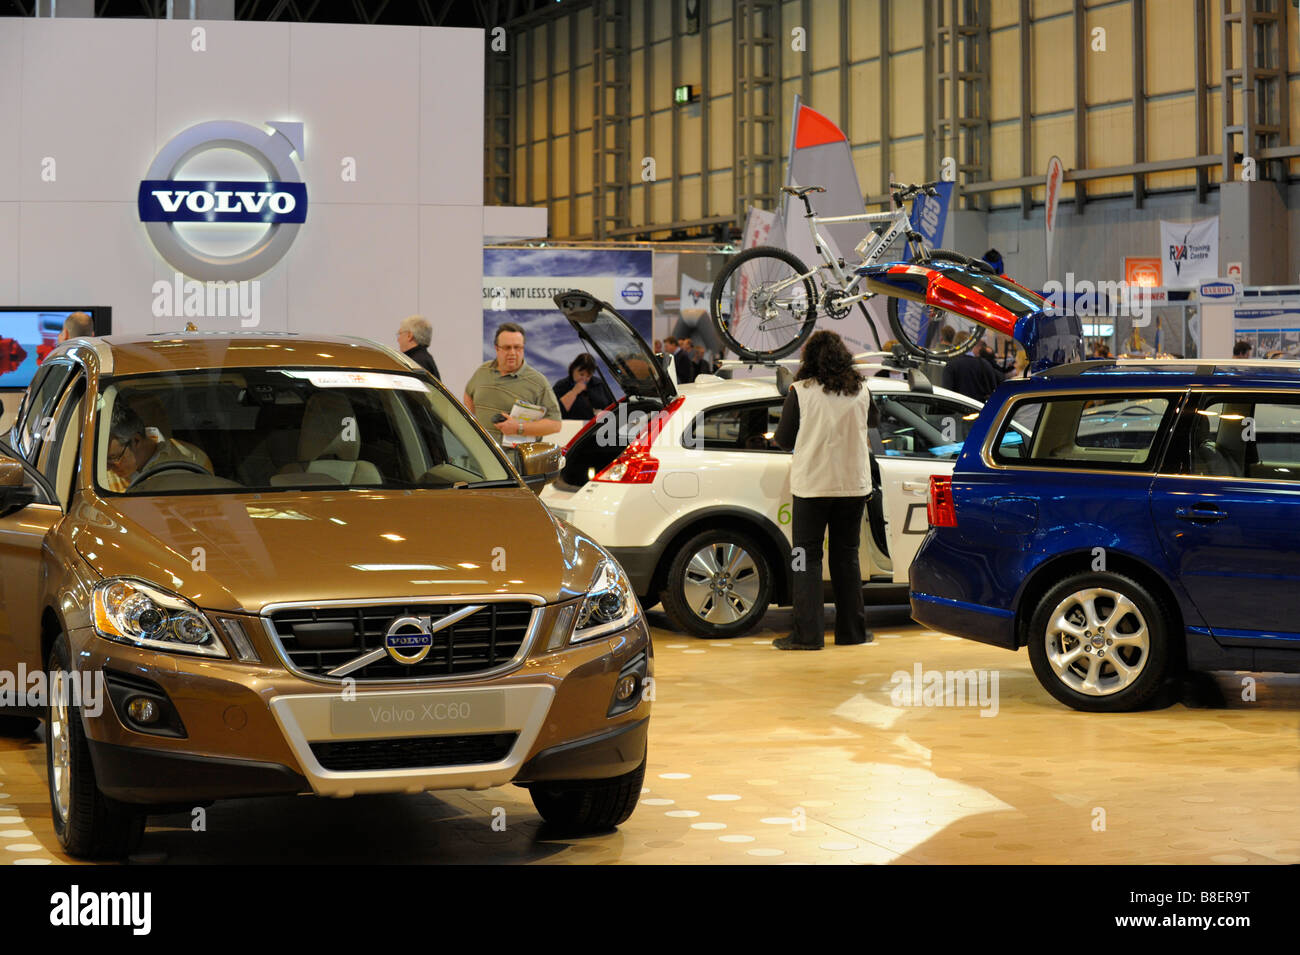 Volvo Exhibition Stand : Volvo cars show stock photos volvo cars show stock images alamy